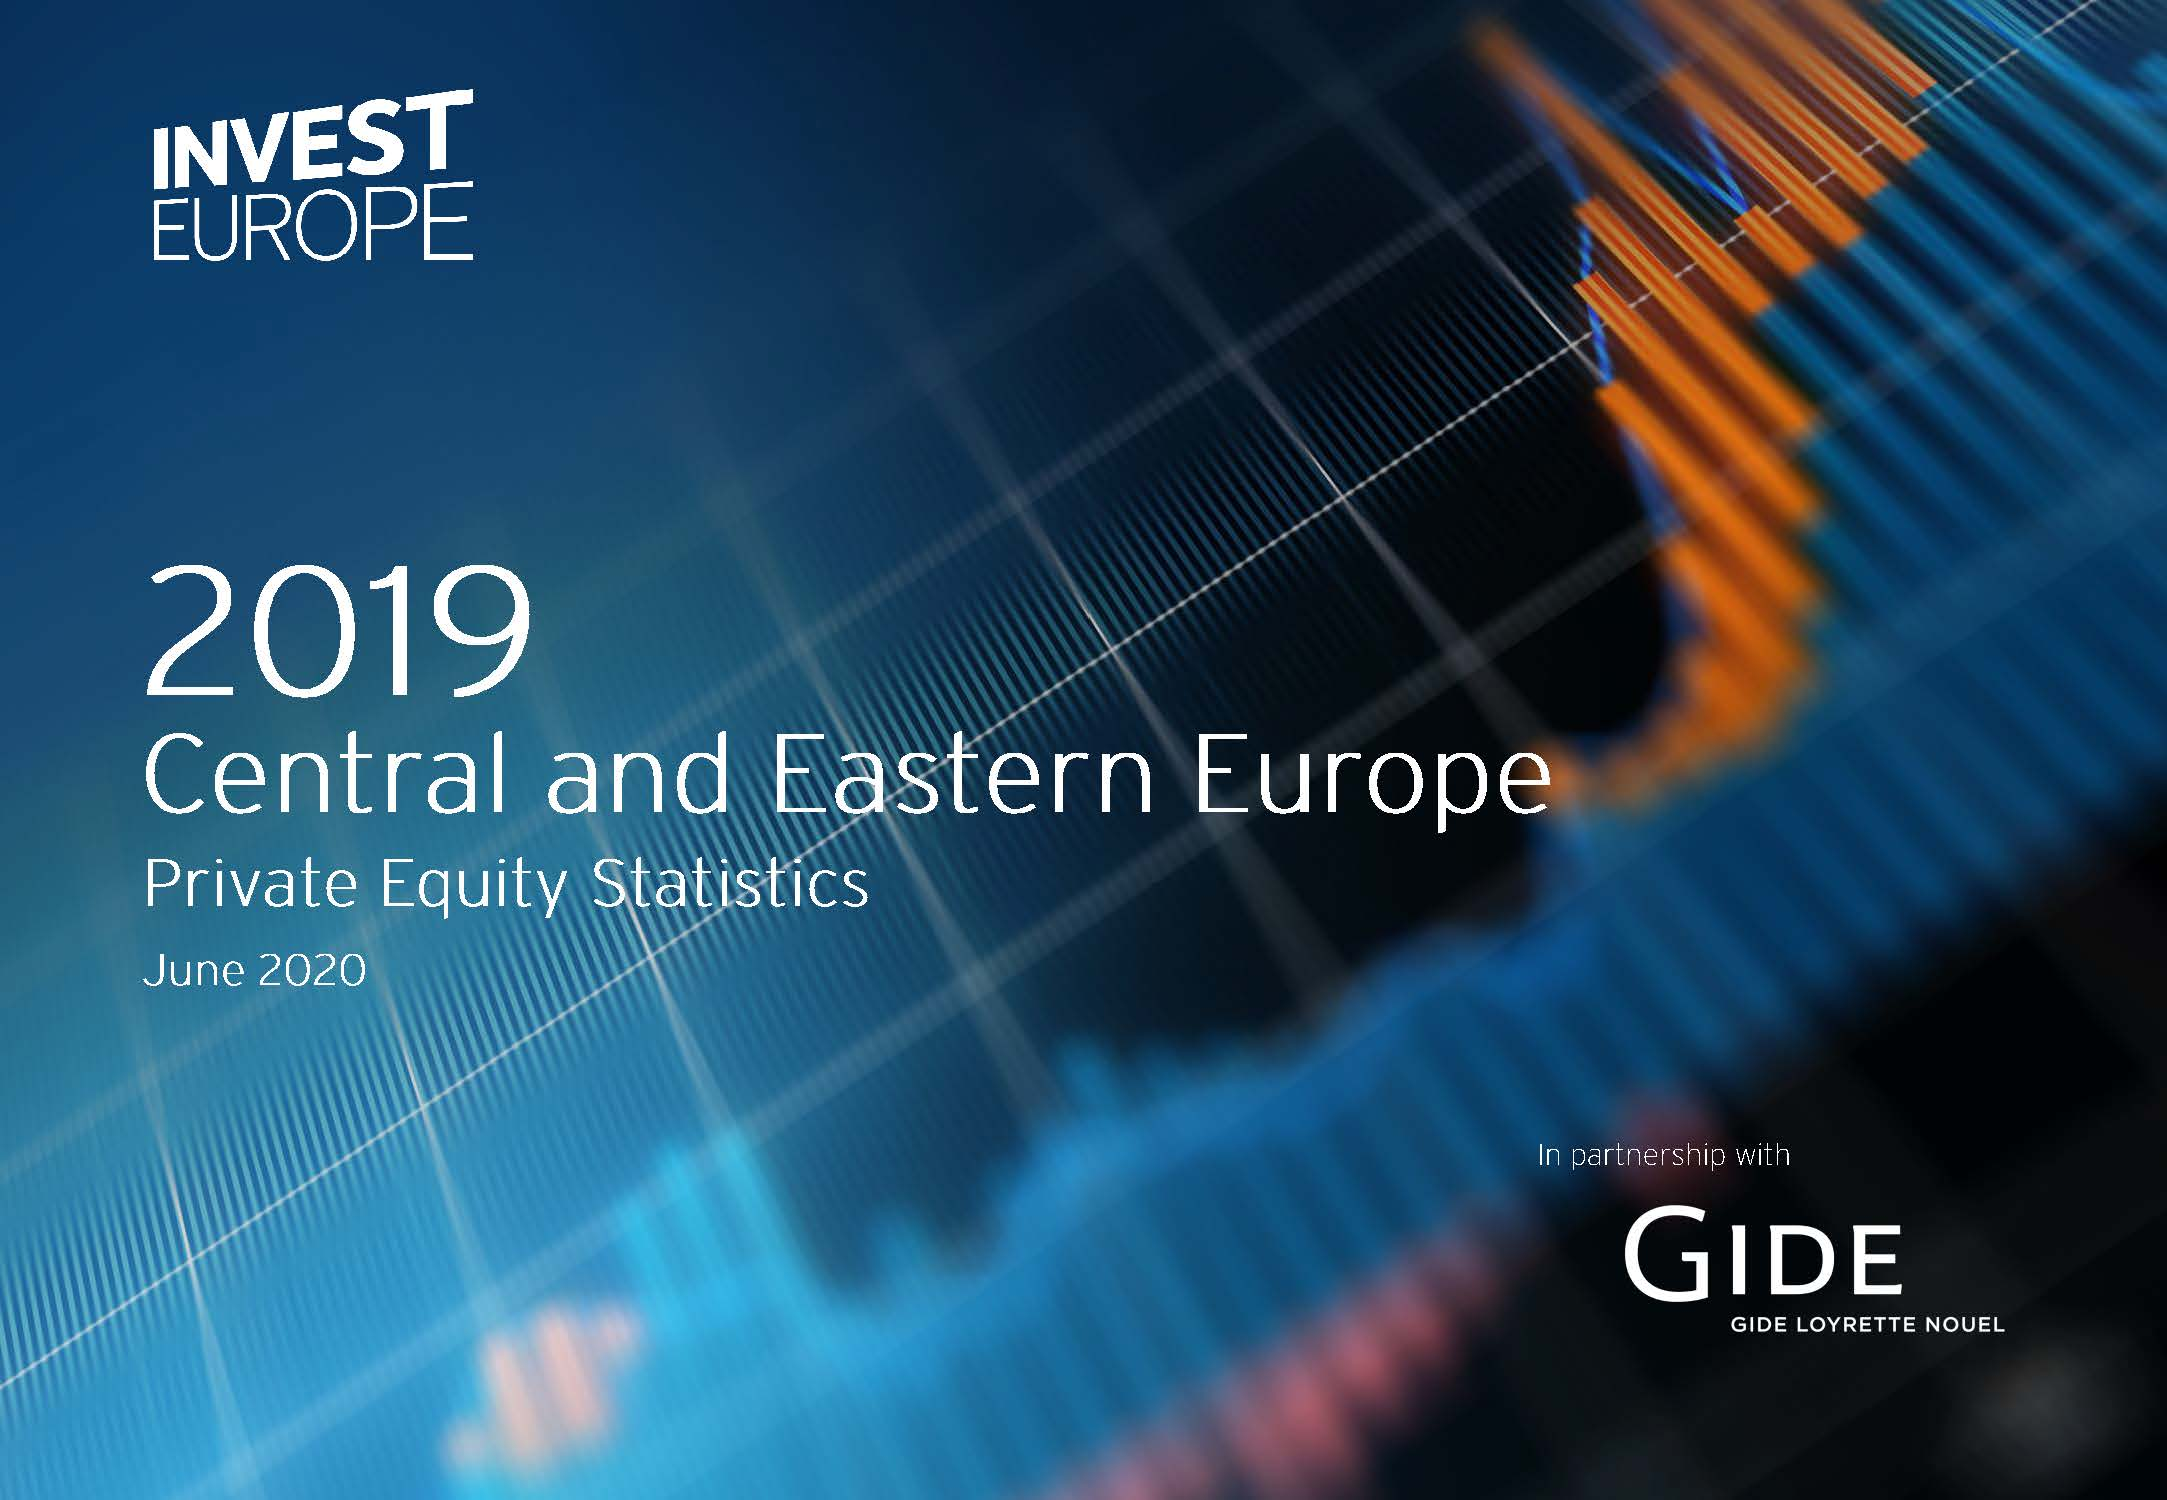 Invest Europe - 2019 Central and Eastern Europe Private Equity Statistics